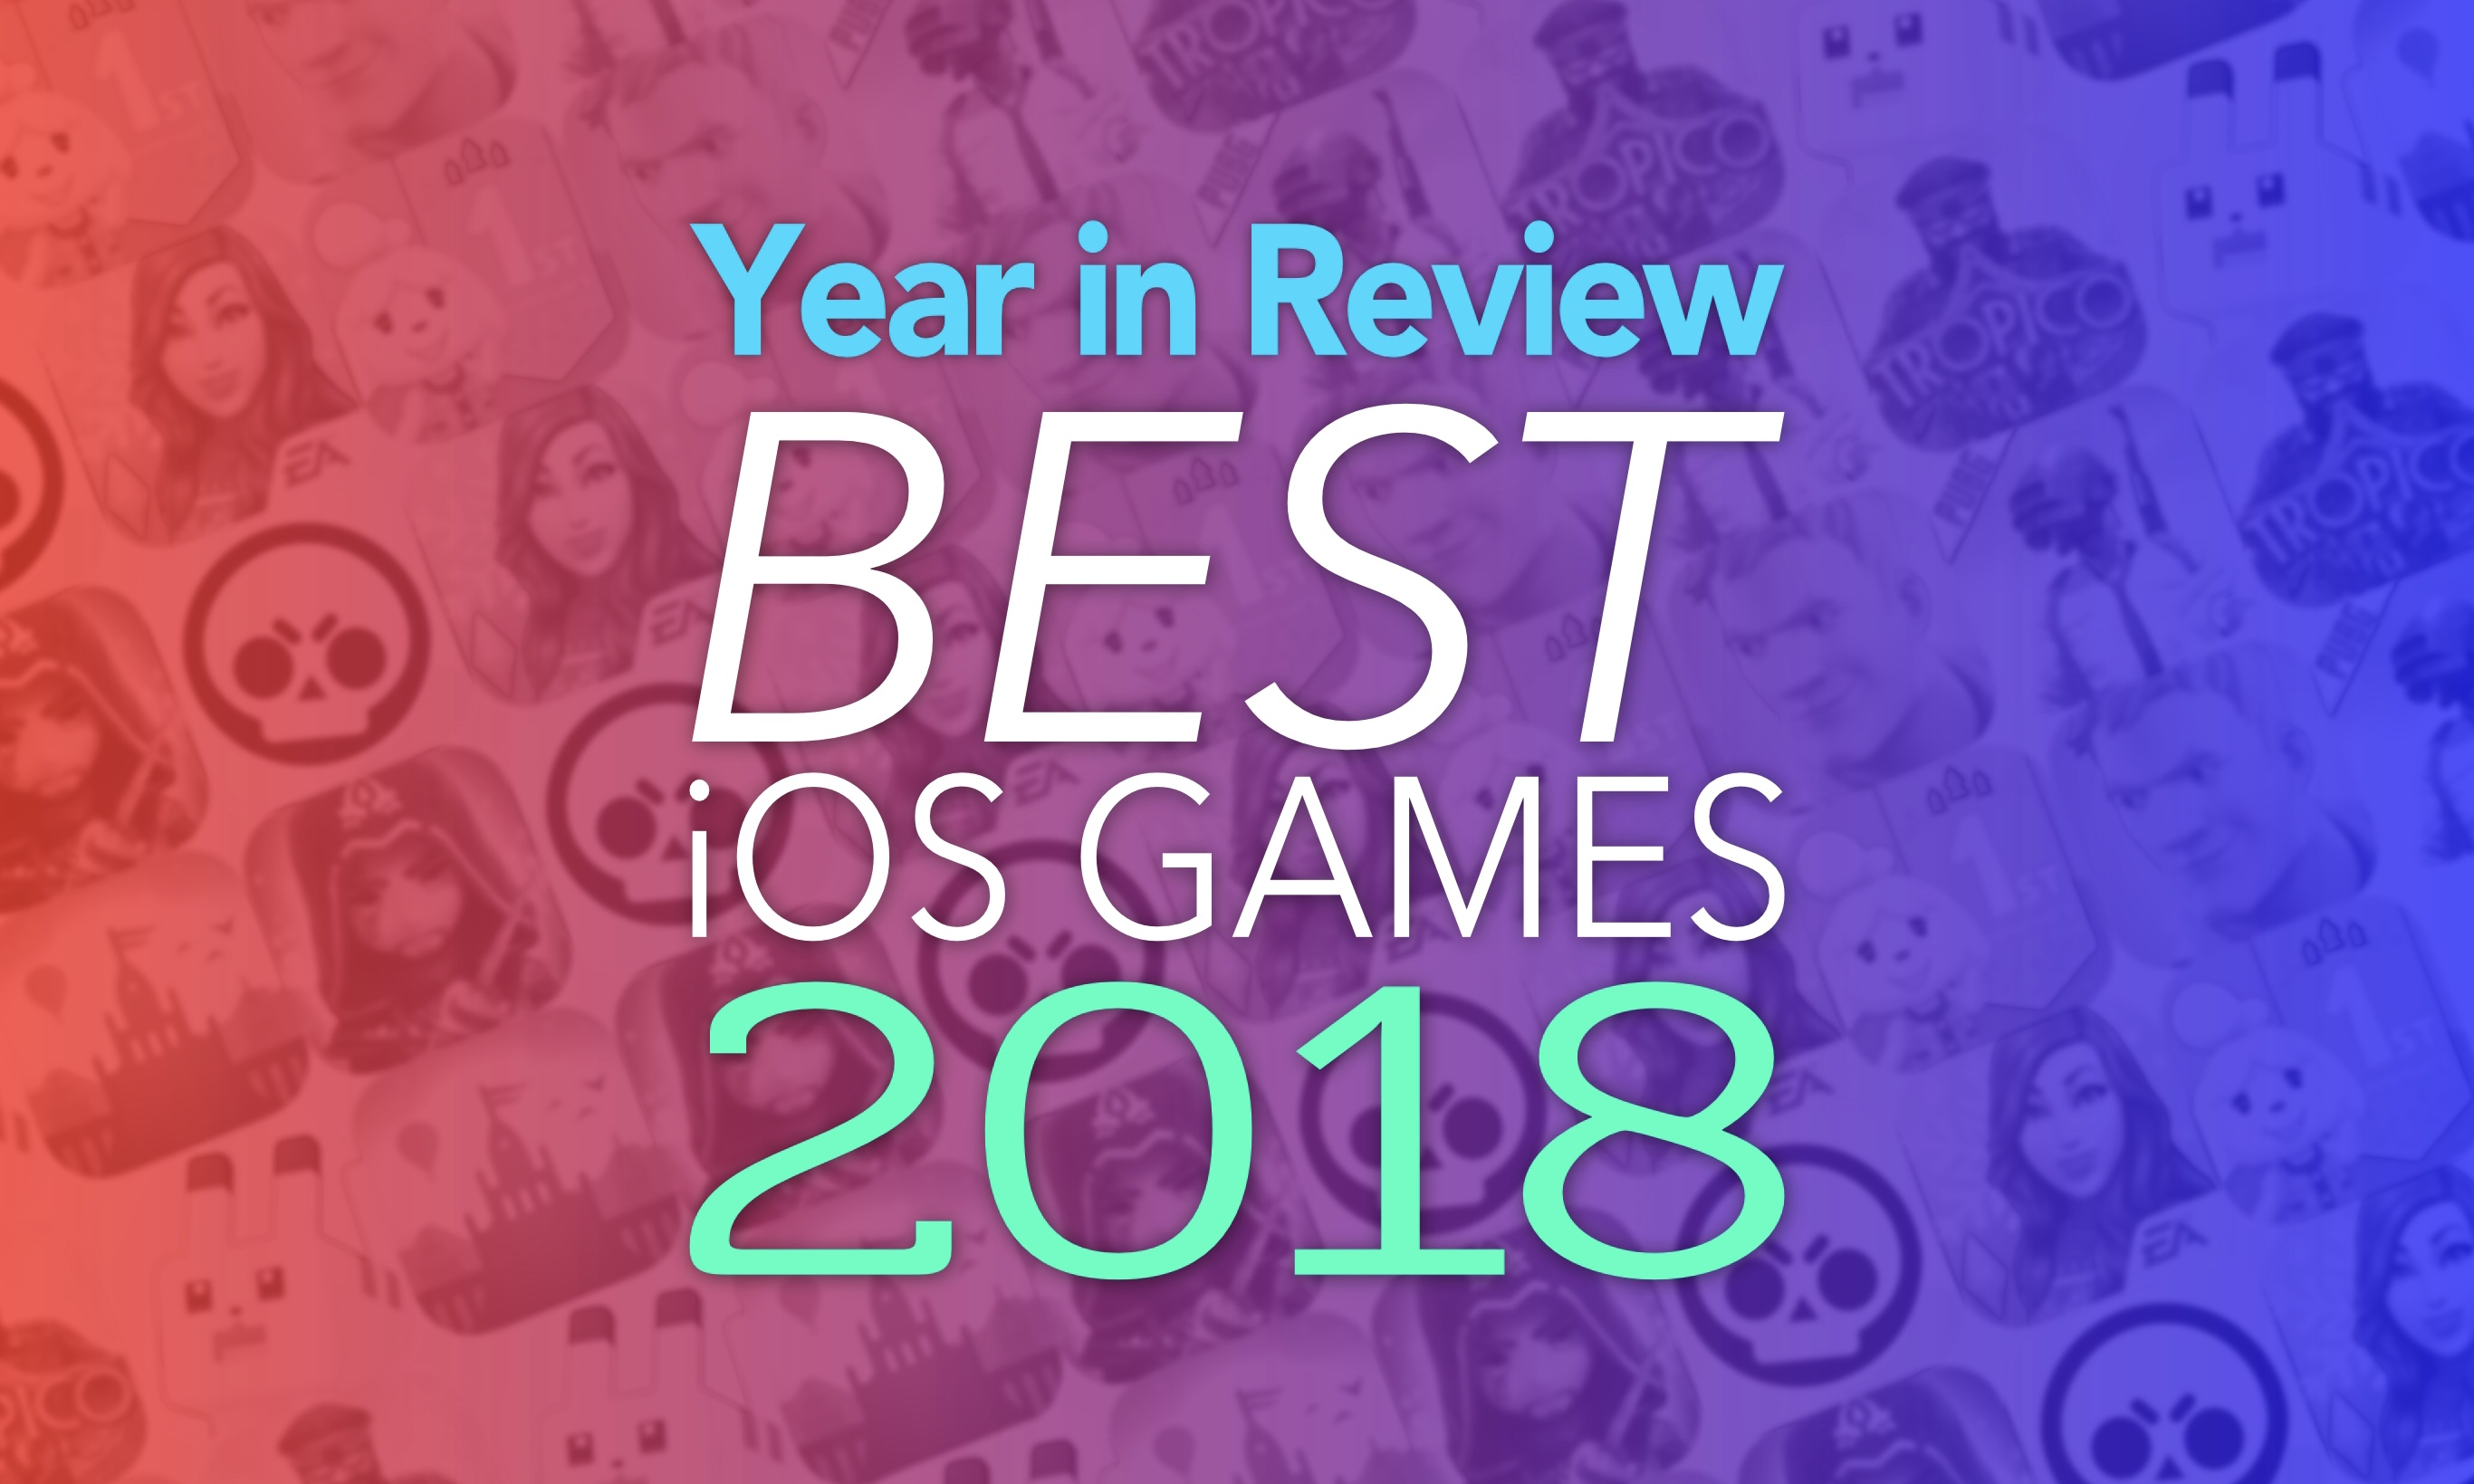 Year in Review Best iOS Games 2018